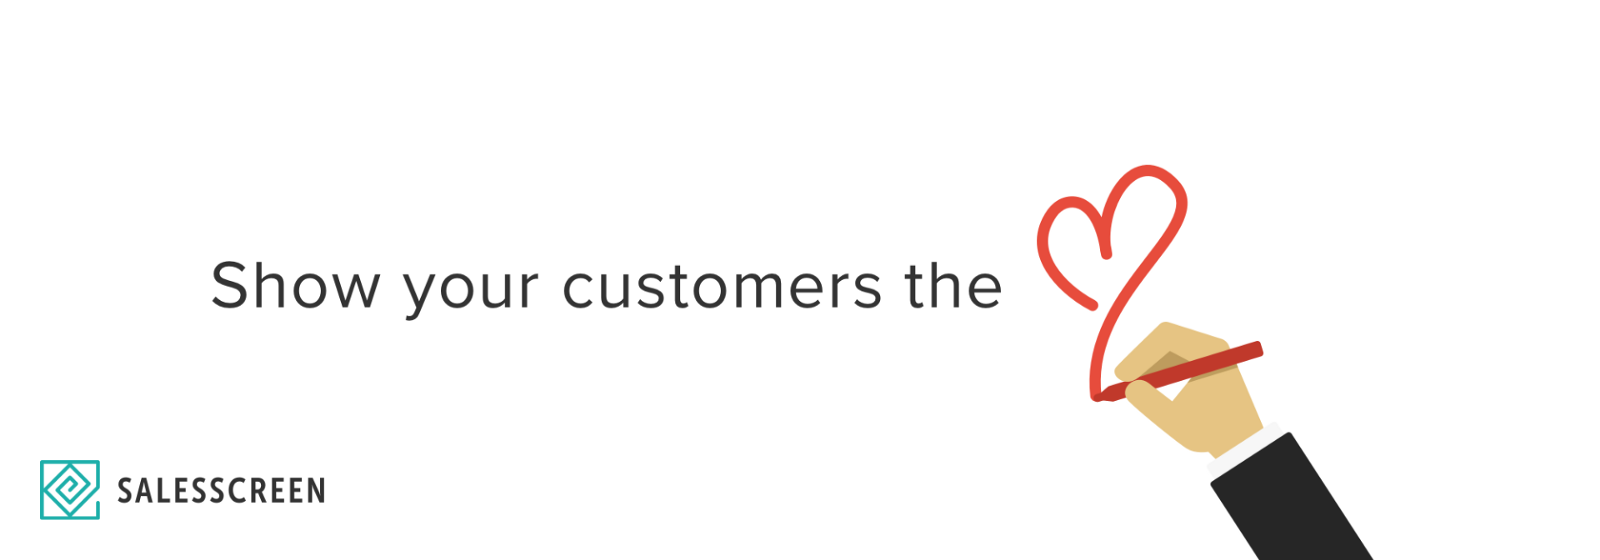 Show your customers the love